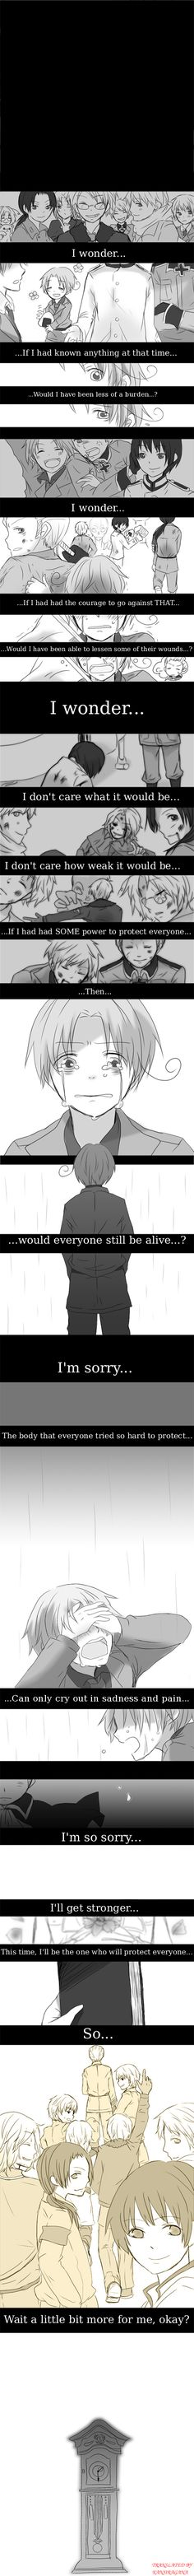 I regret reading this at school... people looked at me weirdly for crying so suddenly... feels... T-T